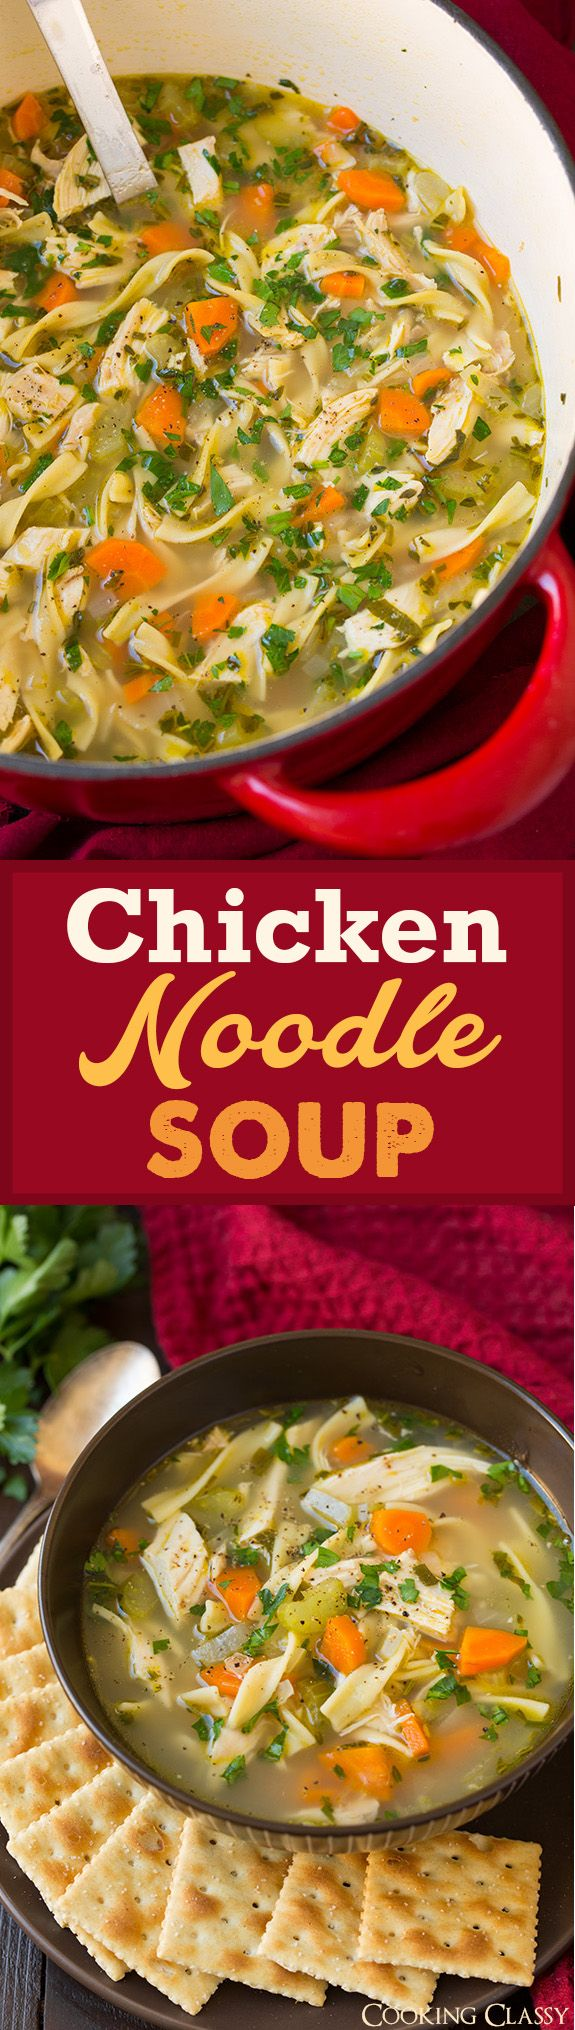 Chicken Noodle Soup - LOVE this recipe! My go to Chicken Noodle Soup recipe (sometimes I'll just use cooked chicken breasts instead of rotisserie chicken). The ultimate comforting dinner!